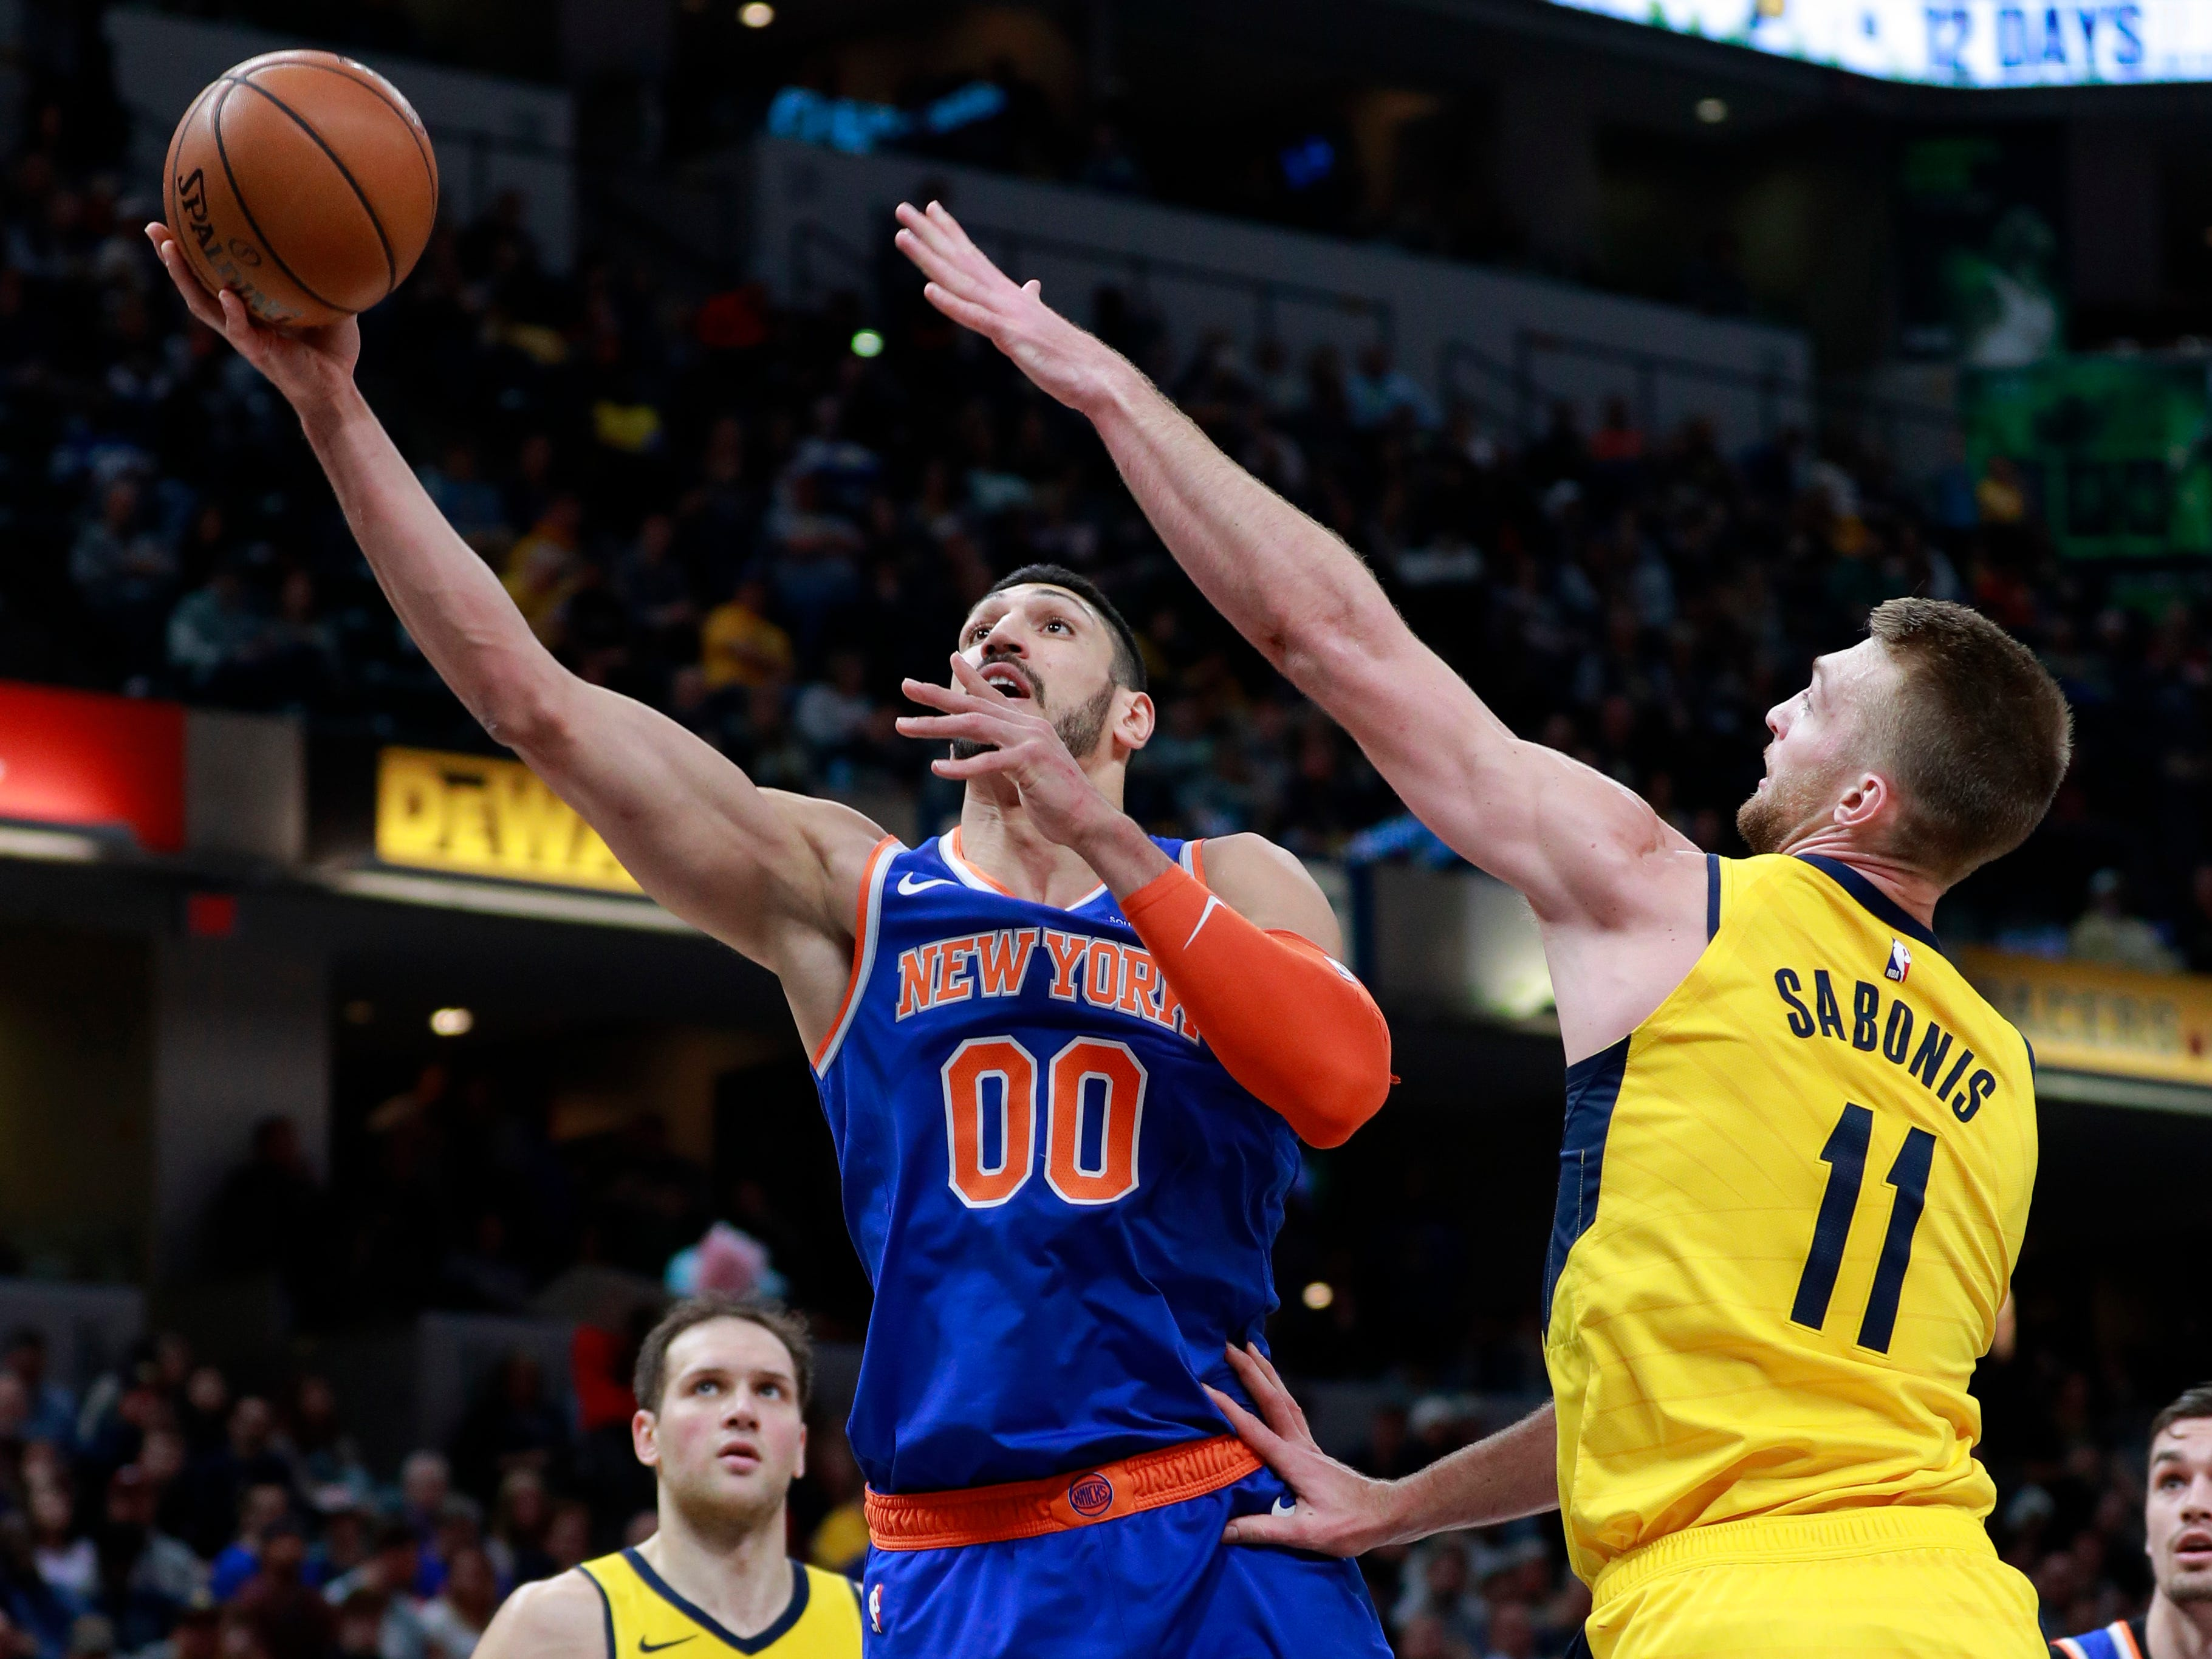 New York Knicks center Enes Kanter (00) shoots the basketball defended by Indiana Pacers forward Domantas Sabonis during the first half of an NBA basketball game, Sunday, Dec. 16, 2018, in Indianapolis.